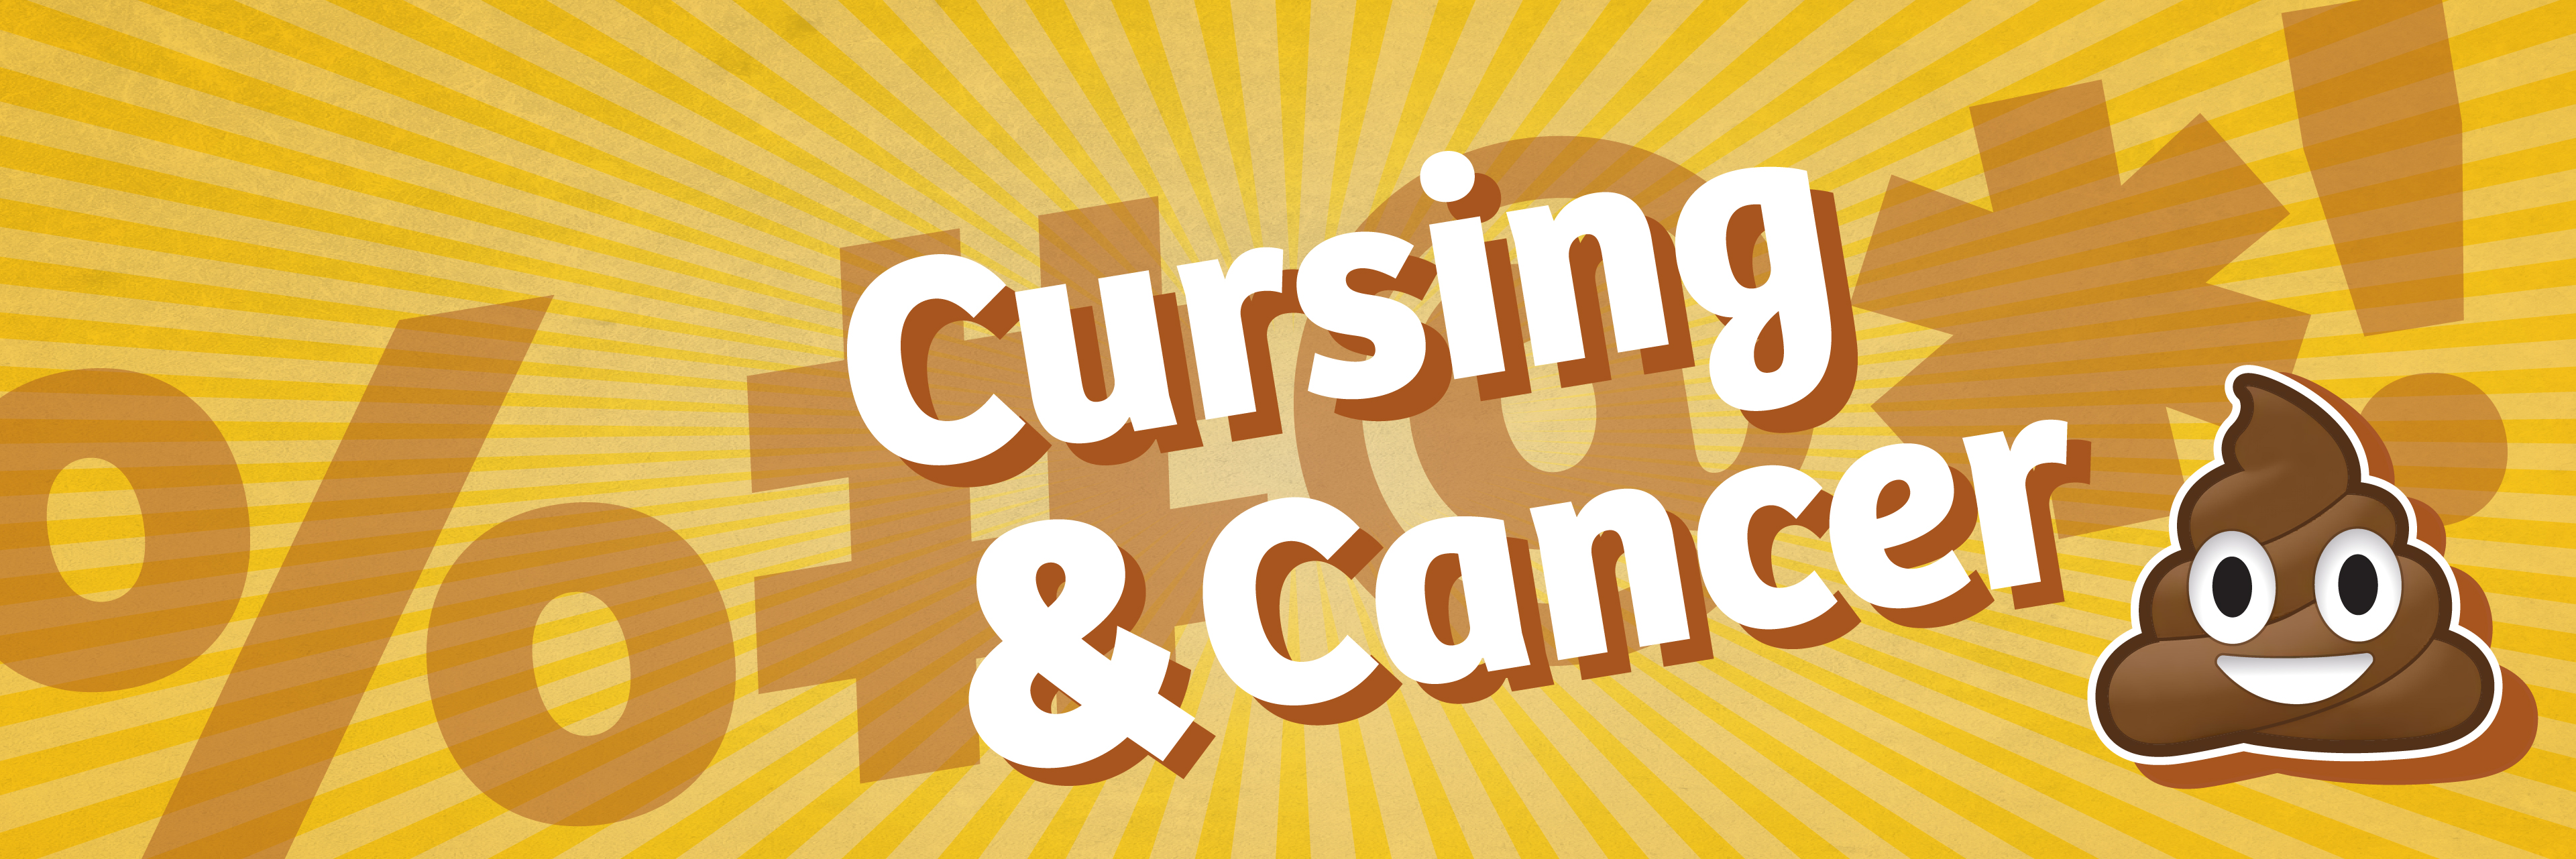 Cursing and Cancer